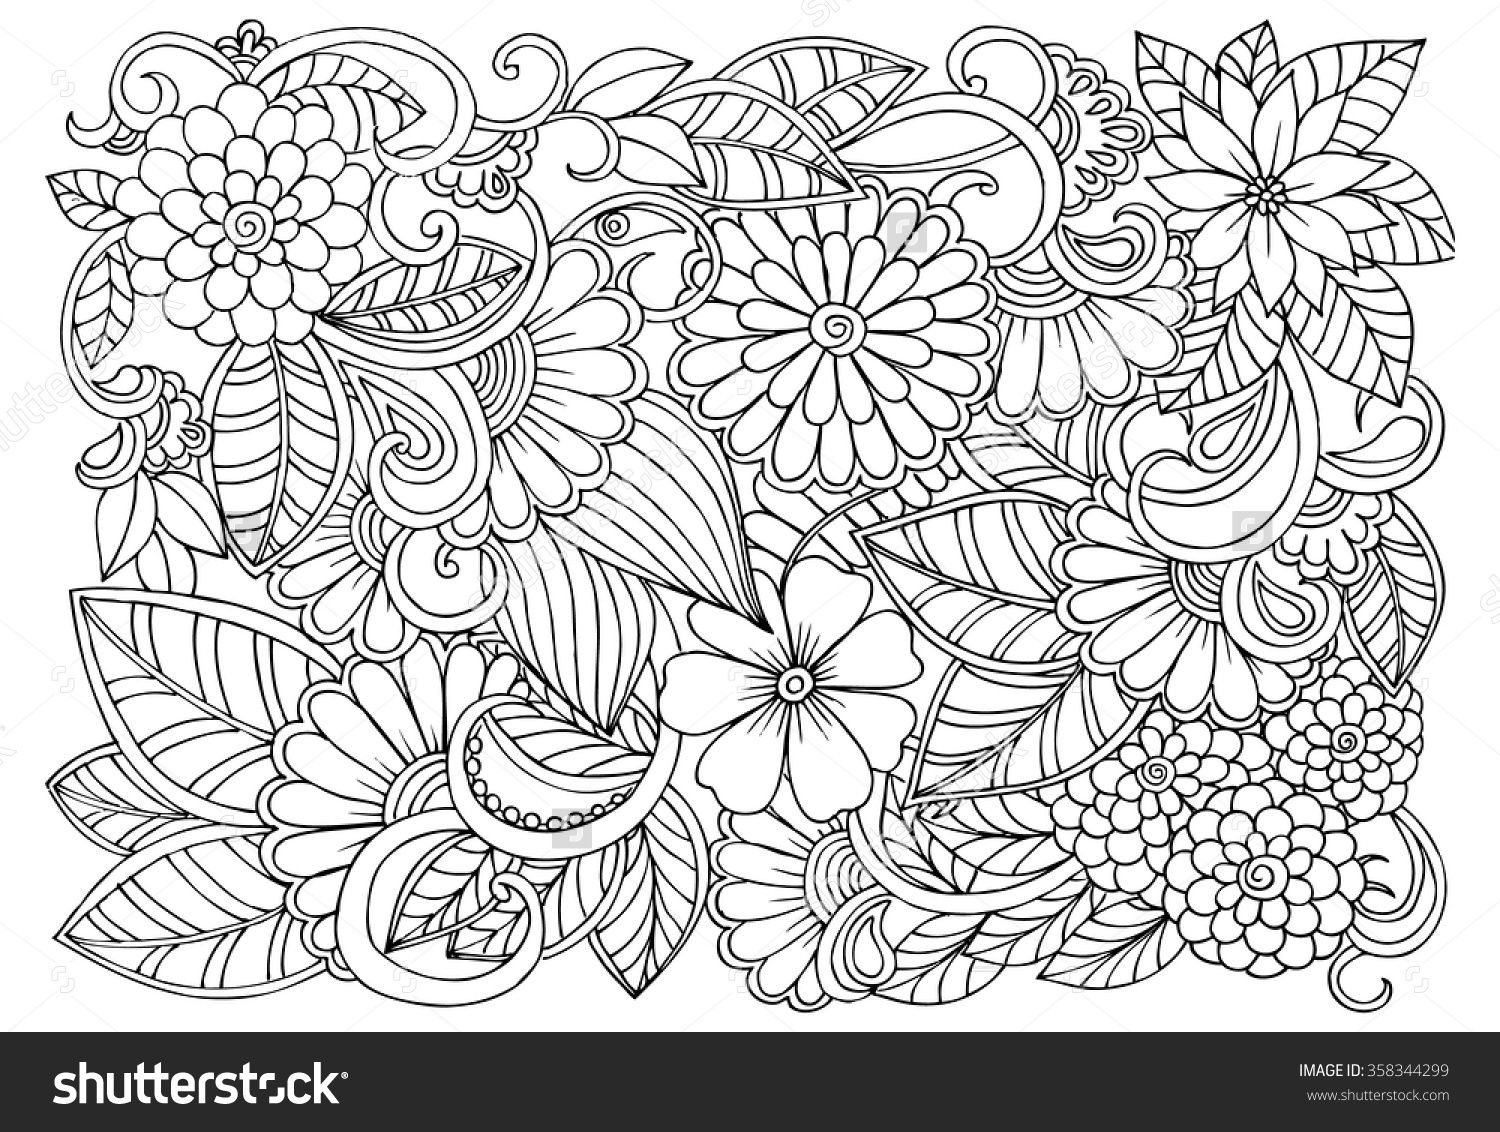 Coloring Pages Of Flower Designs With Flower Designs Coloring